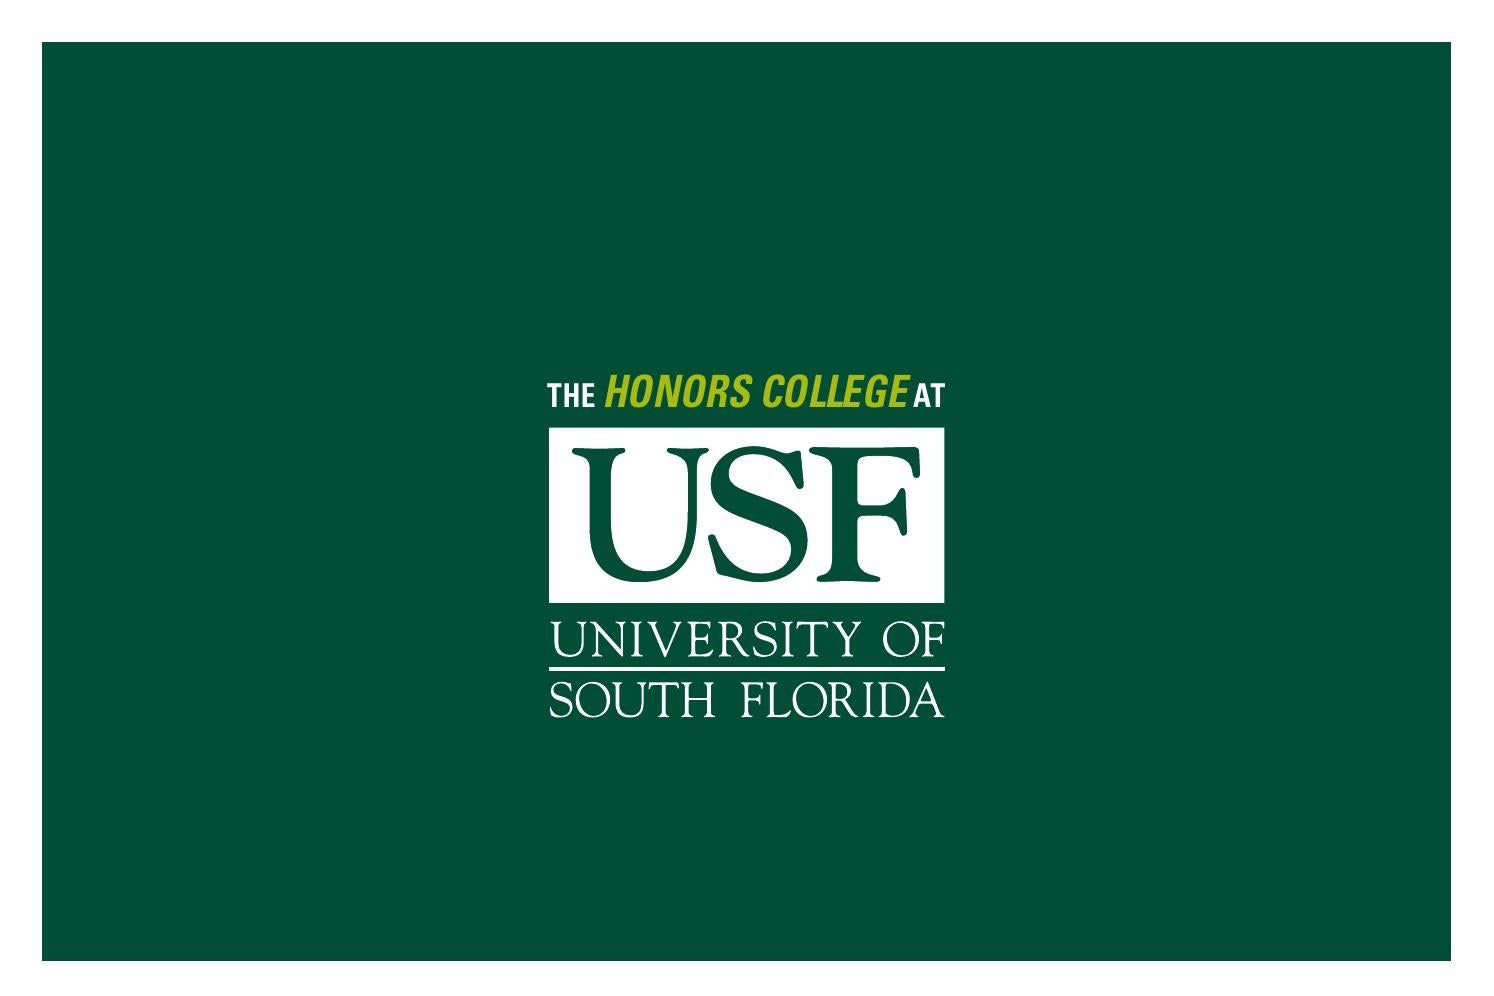 usf honors thesis grade You must have a minimum of 40 graded usf hours, a usf gpa of 35 and a cumulative gpa of 35 in order to determine eligibility for honors, courses that are excluded in your gpa via transfer course repeats and/or usf's grade forgiveness policy are added back into the gpa calculation.